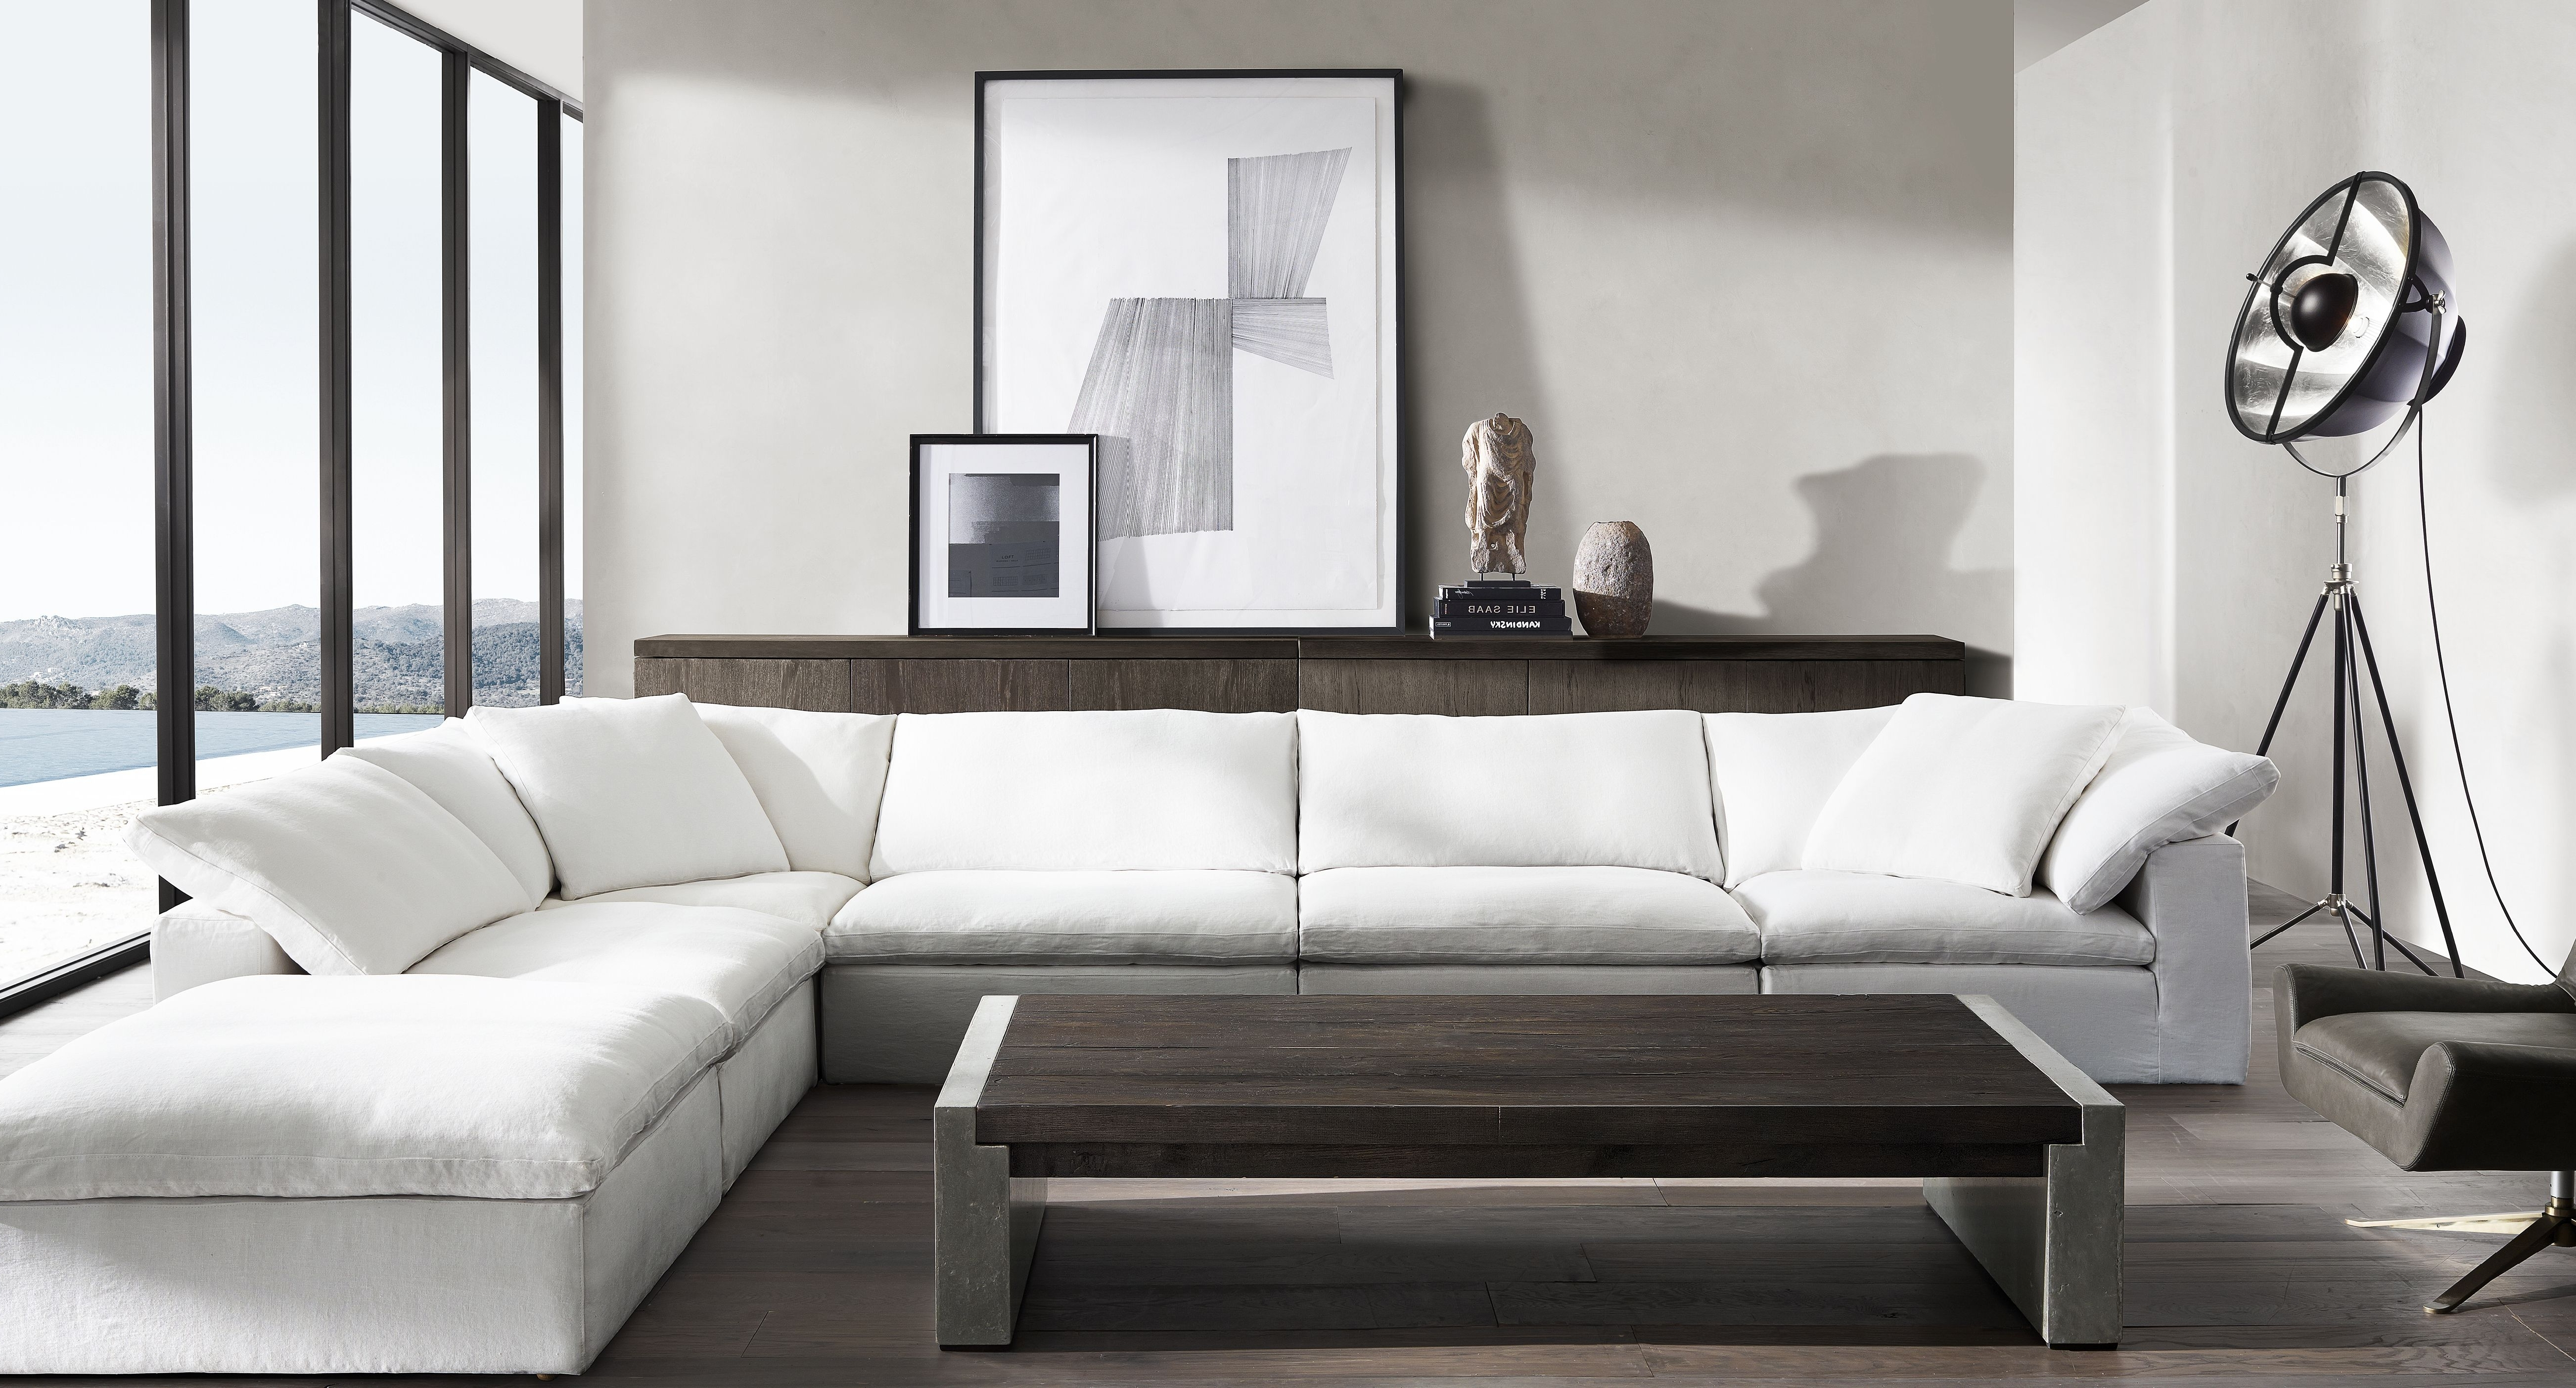 Restoration Hardware Sectional Sofas With Widely Used Everything Kendall Jenner Is Buying For Her New House, Including A (View 12 of 15)